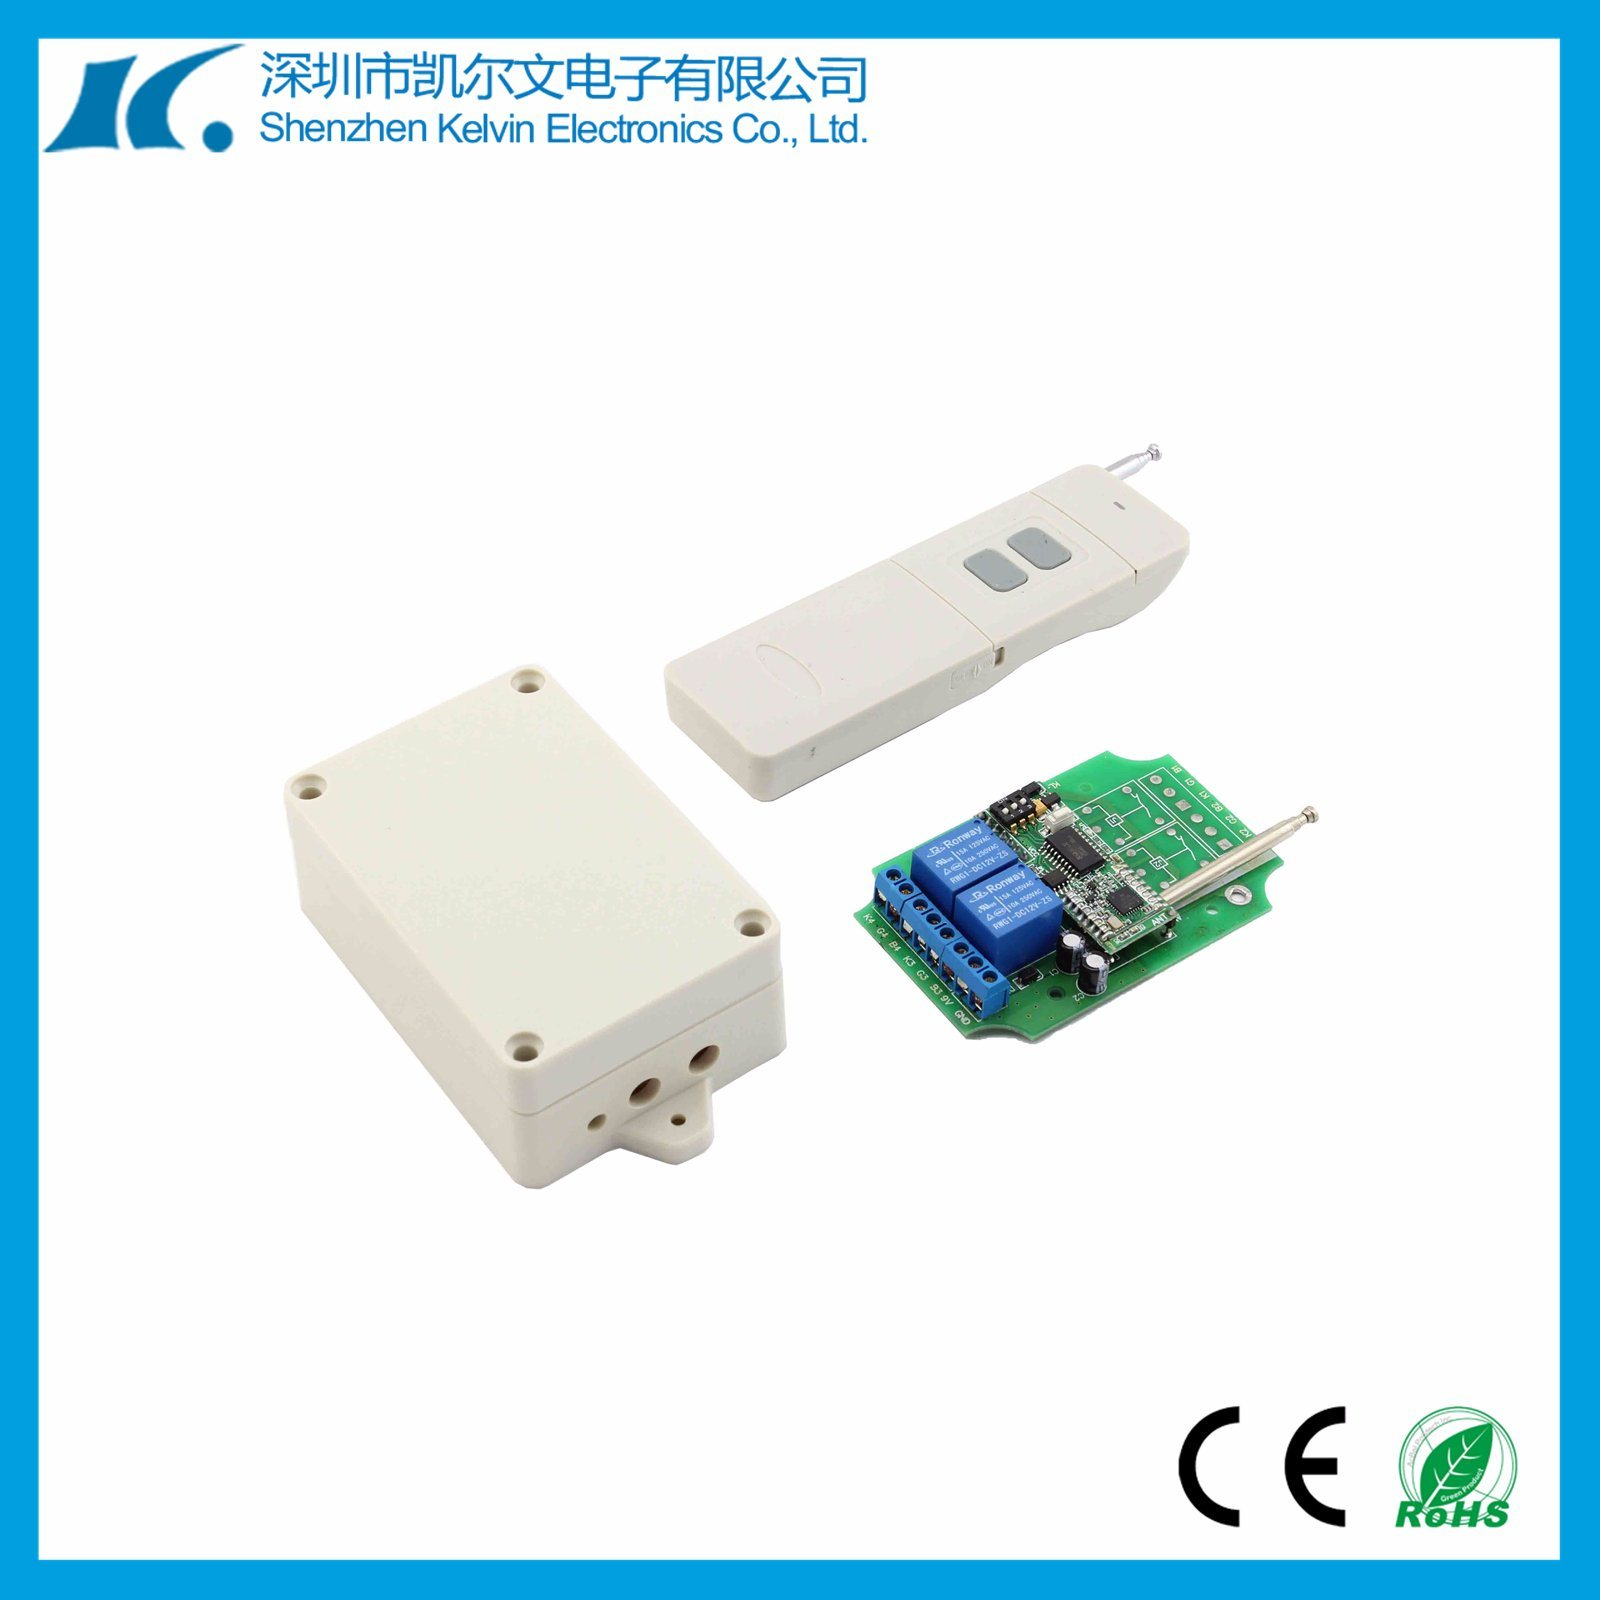 remote oem dhgate ce odm in from light wireless product meter fashion available fan rf switch com cert rohs with